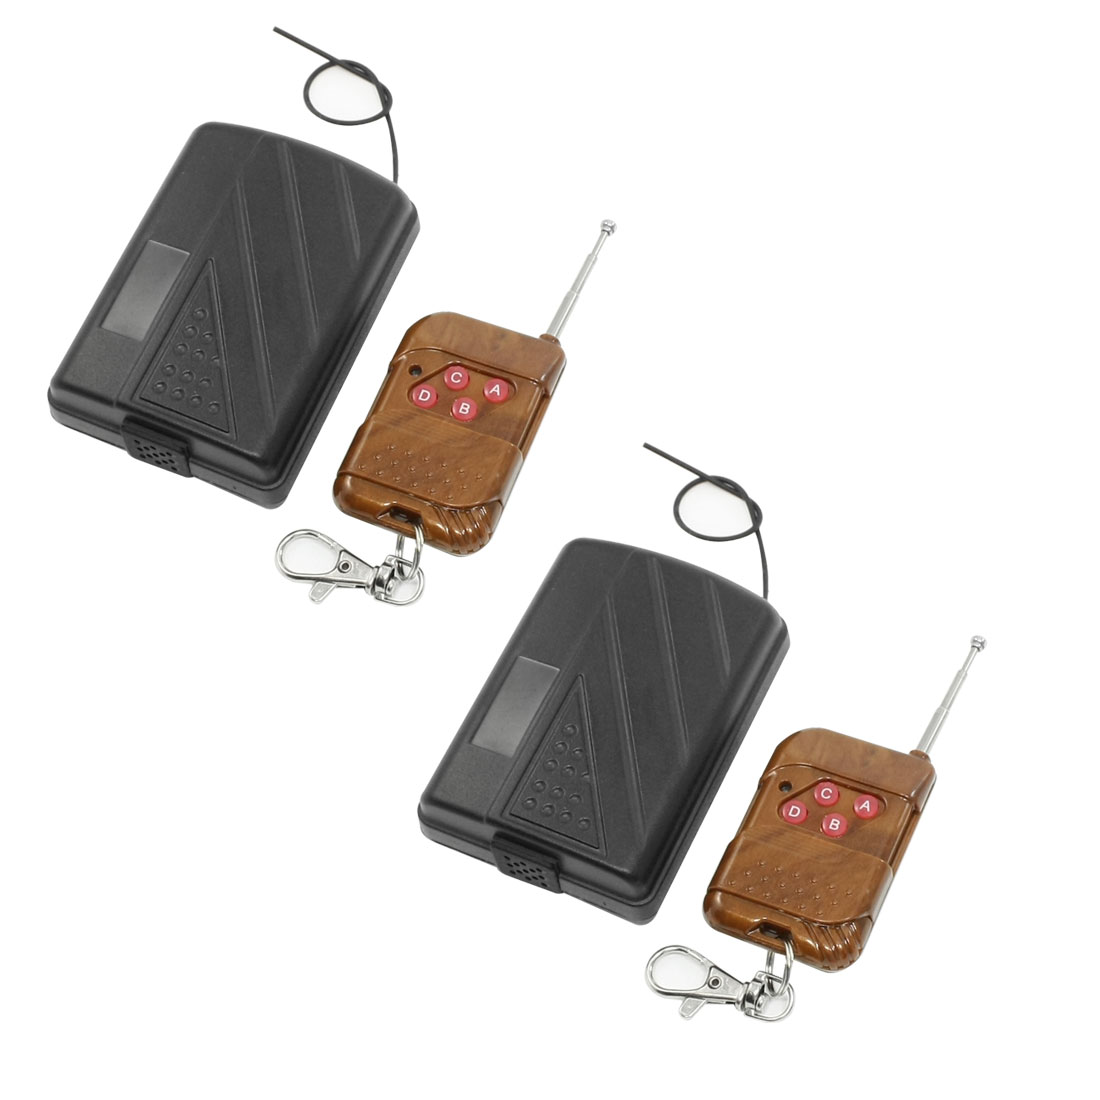 2 Sets DC 12V 4-Channel Fixed Code Wireless Remote Control Switch Transmitter Receiver